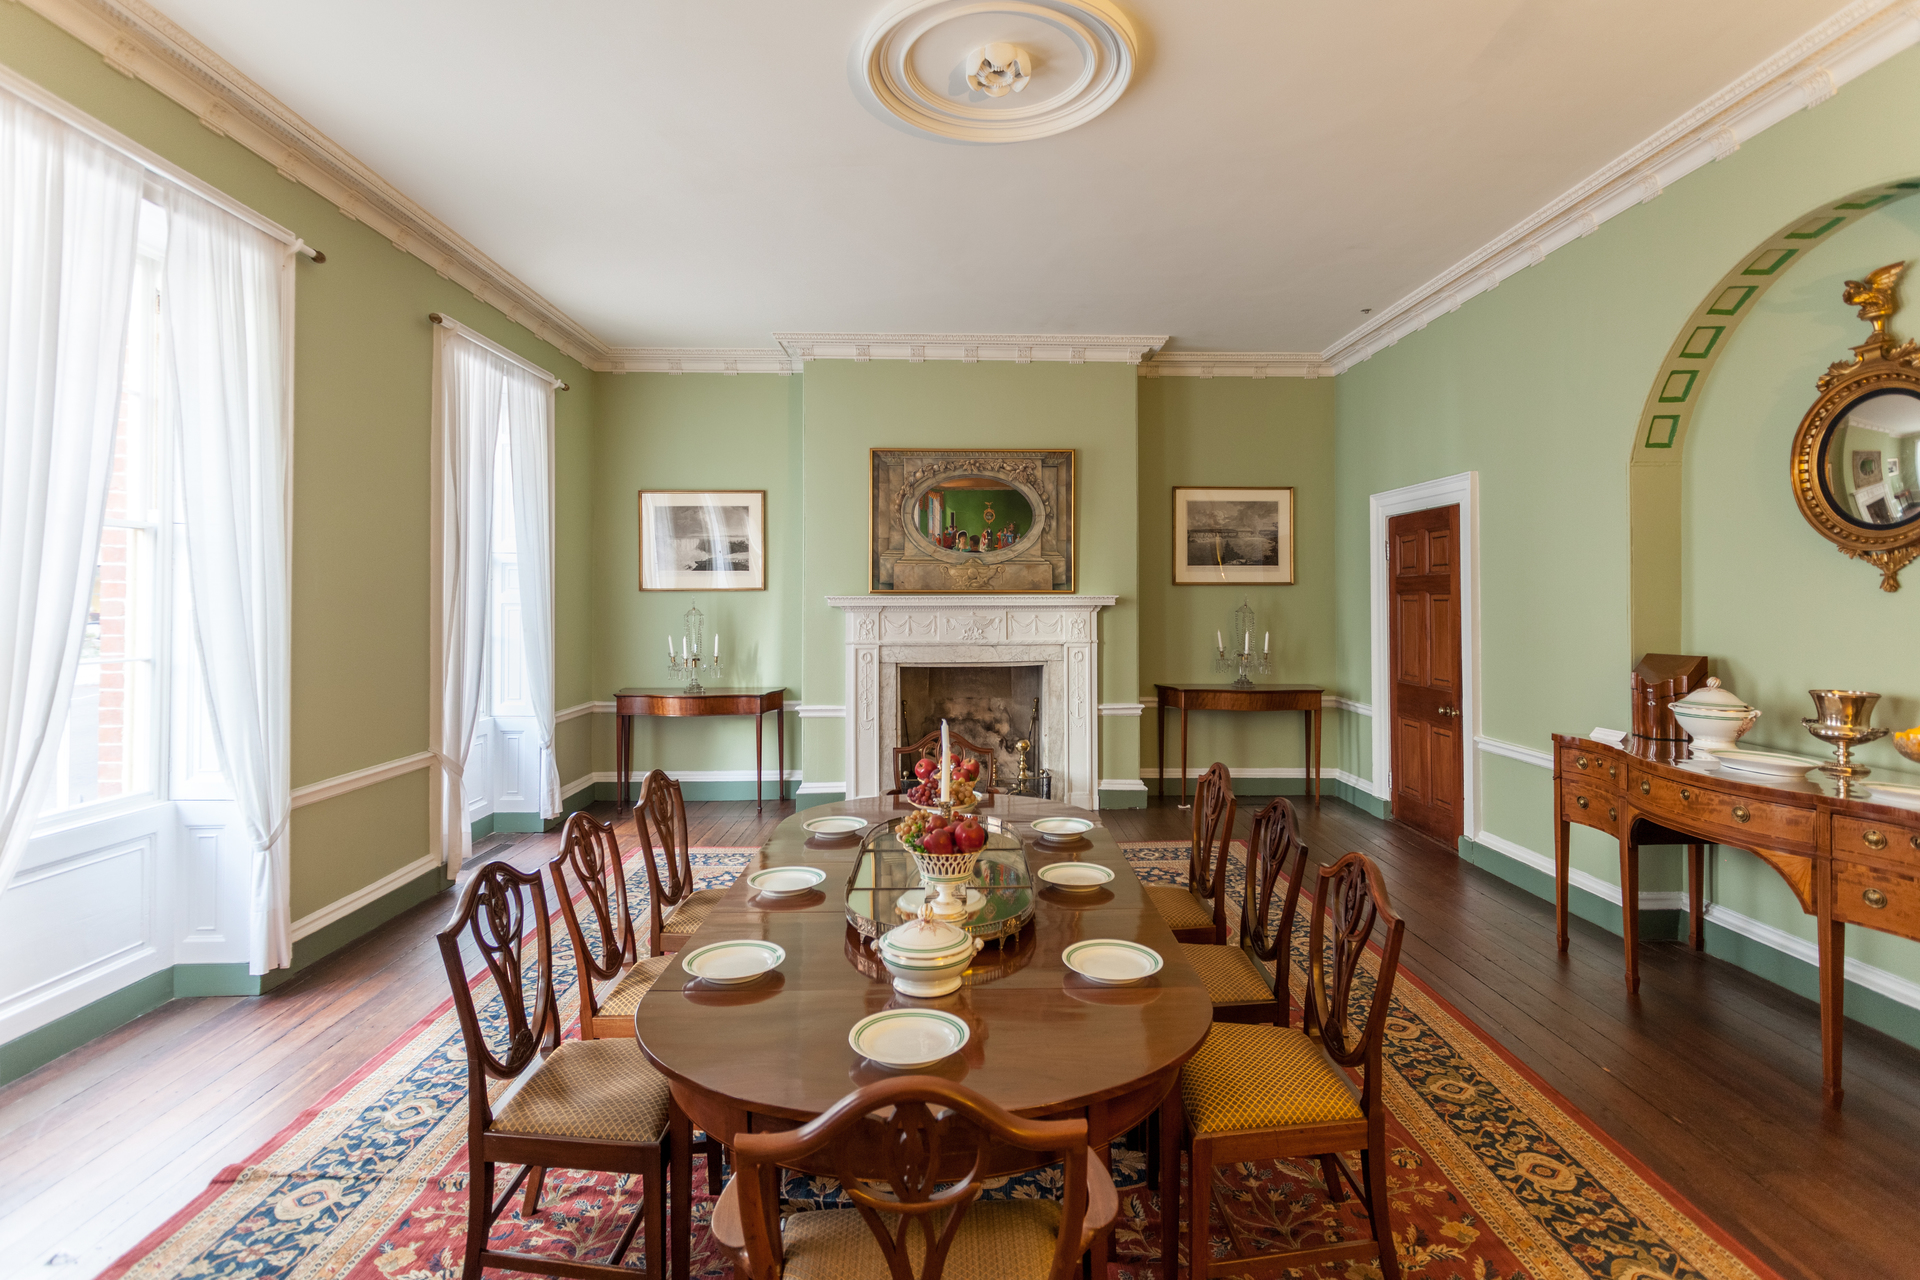 """Special furniture forms played a role in the taking of meals as well; sideboards served as staging areas for the meal.  Balance, an important classical patterning device, was achieved by placing a knife box at either end with decanters, presentation pieces, and serving plates arranged in between.  Silver plateaus served as the focal point of the dining table with dishes arranged symmetrically around the centerpiece.  One of the Tayloe granddaughters recalled, """"Lights of wax candles and pyramids of fruit, candies, grapes, and oranges at each end, which reflected in the glass, looked particularly pretty."""""""